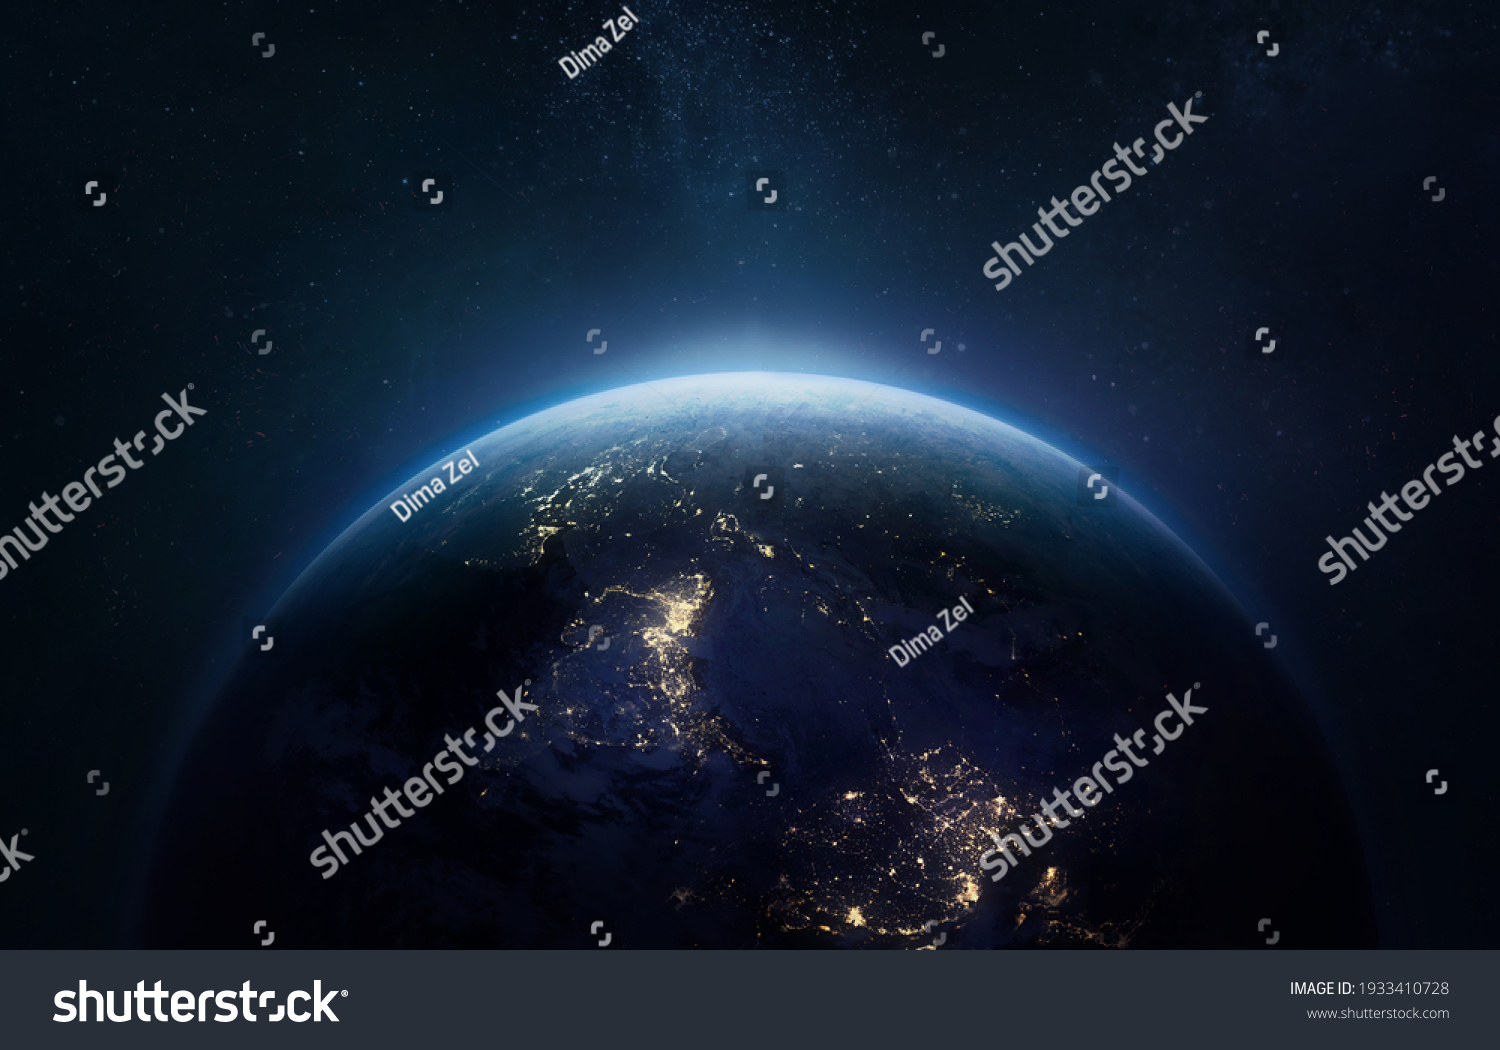 Nightly Earth planet in outer space. City lights on planet. Life of people. Solar system element. Elements of this image furnished by NASA #1933410728